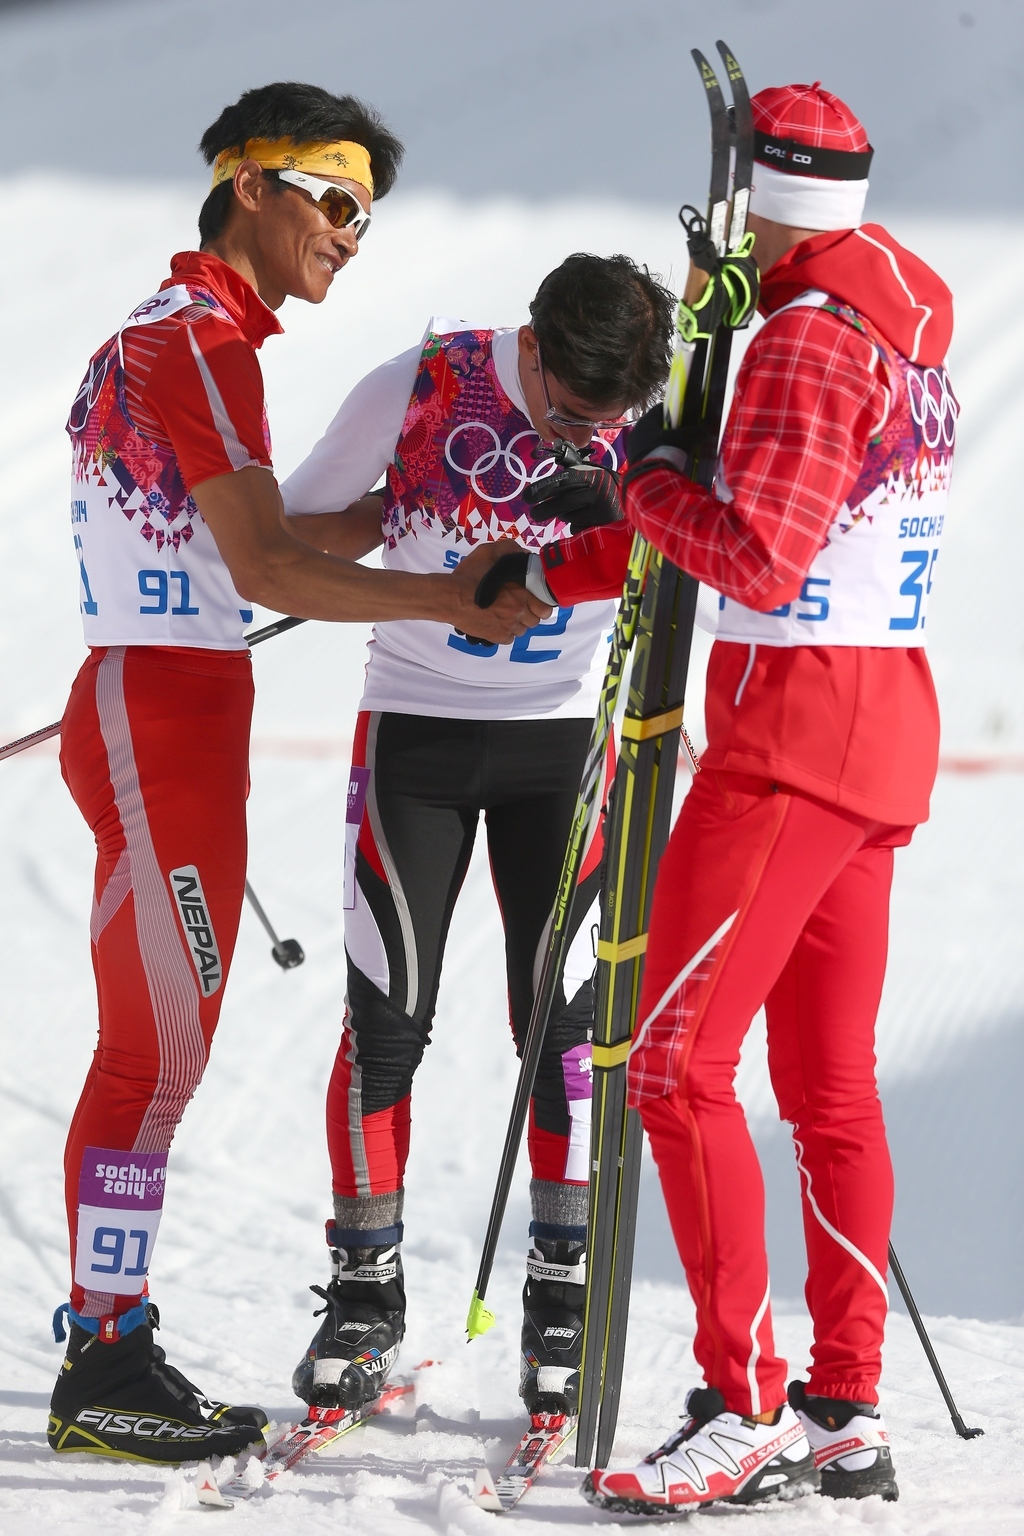 Gold Medalist Is The Perfect Sportsman, Waits 28 Minutes To Shake Hands Of Last-Place Finishers